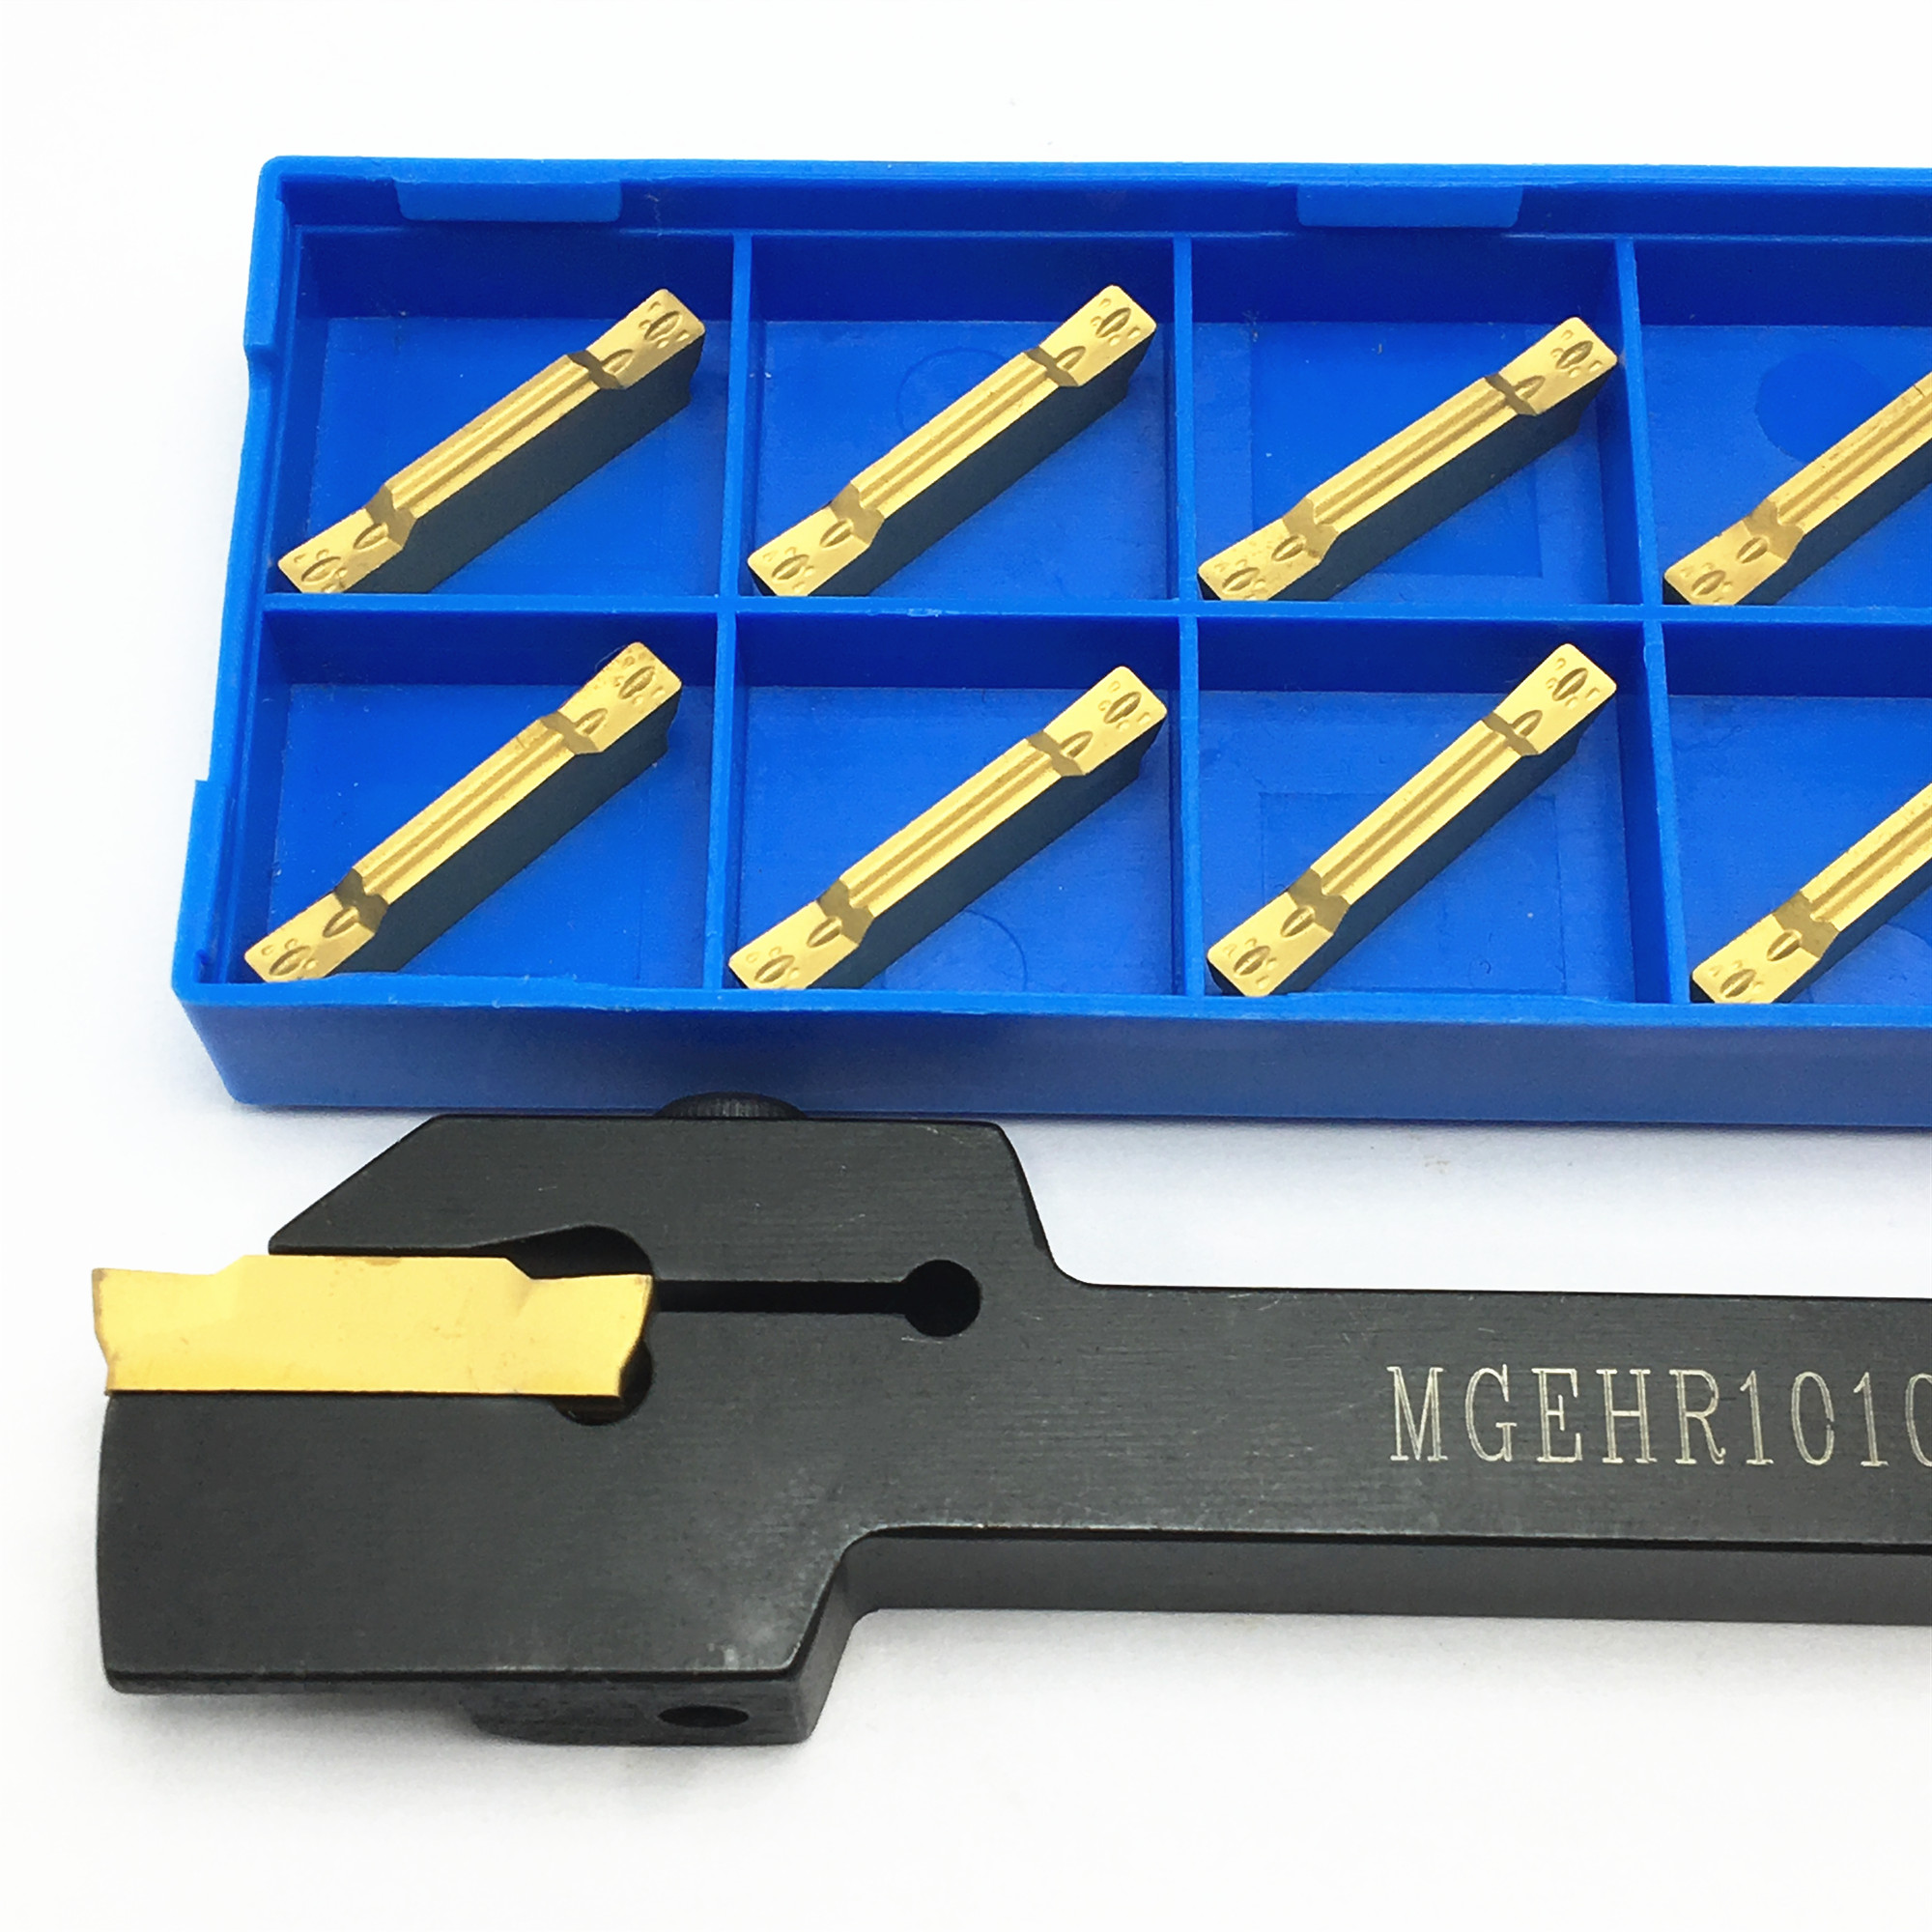 1PCS MGEHR1010 MGEHL1010 External Grooving Tool Holder + 10PCS MGMN150 MGMN200 MGMN300 Carbide Insert Turning Separation Tool